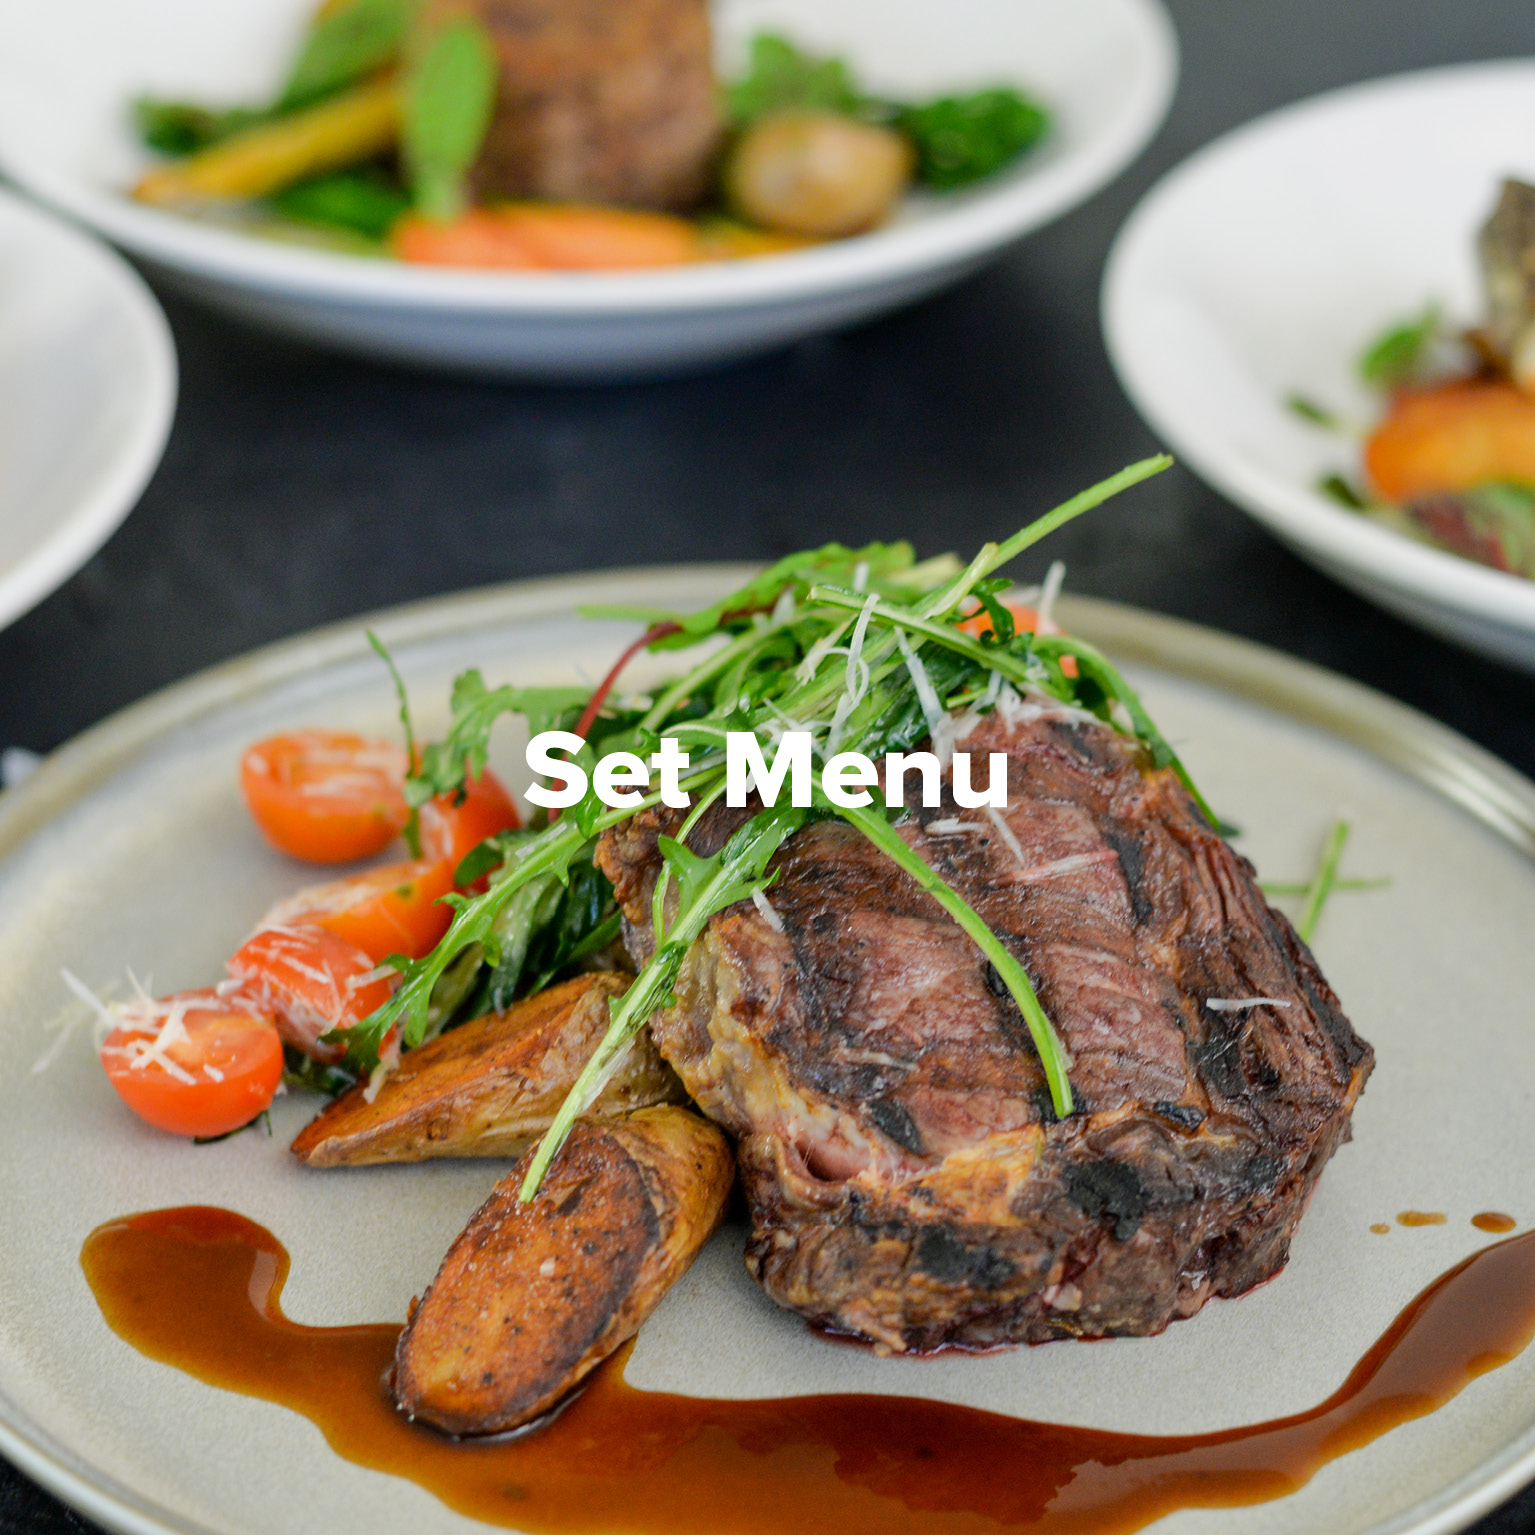 Set Menu at Rowers on Cooks River